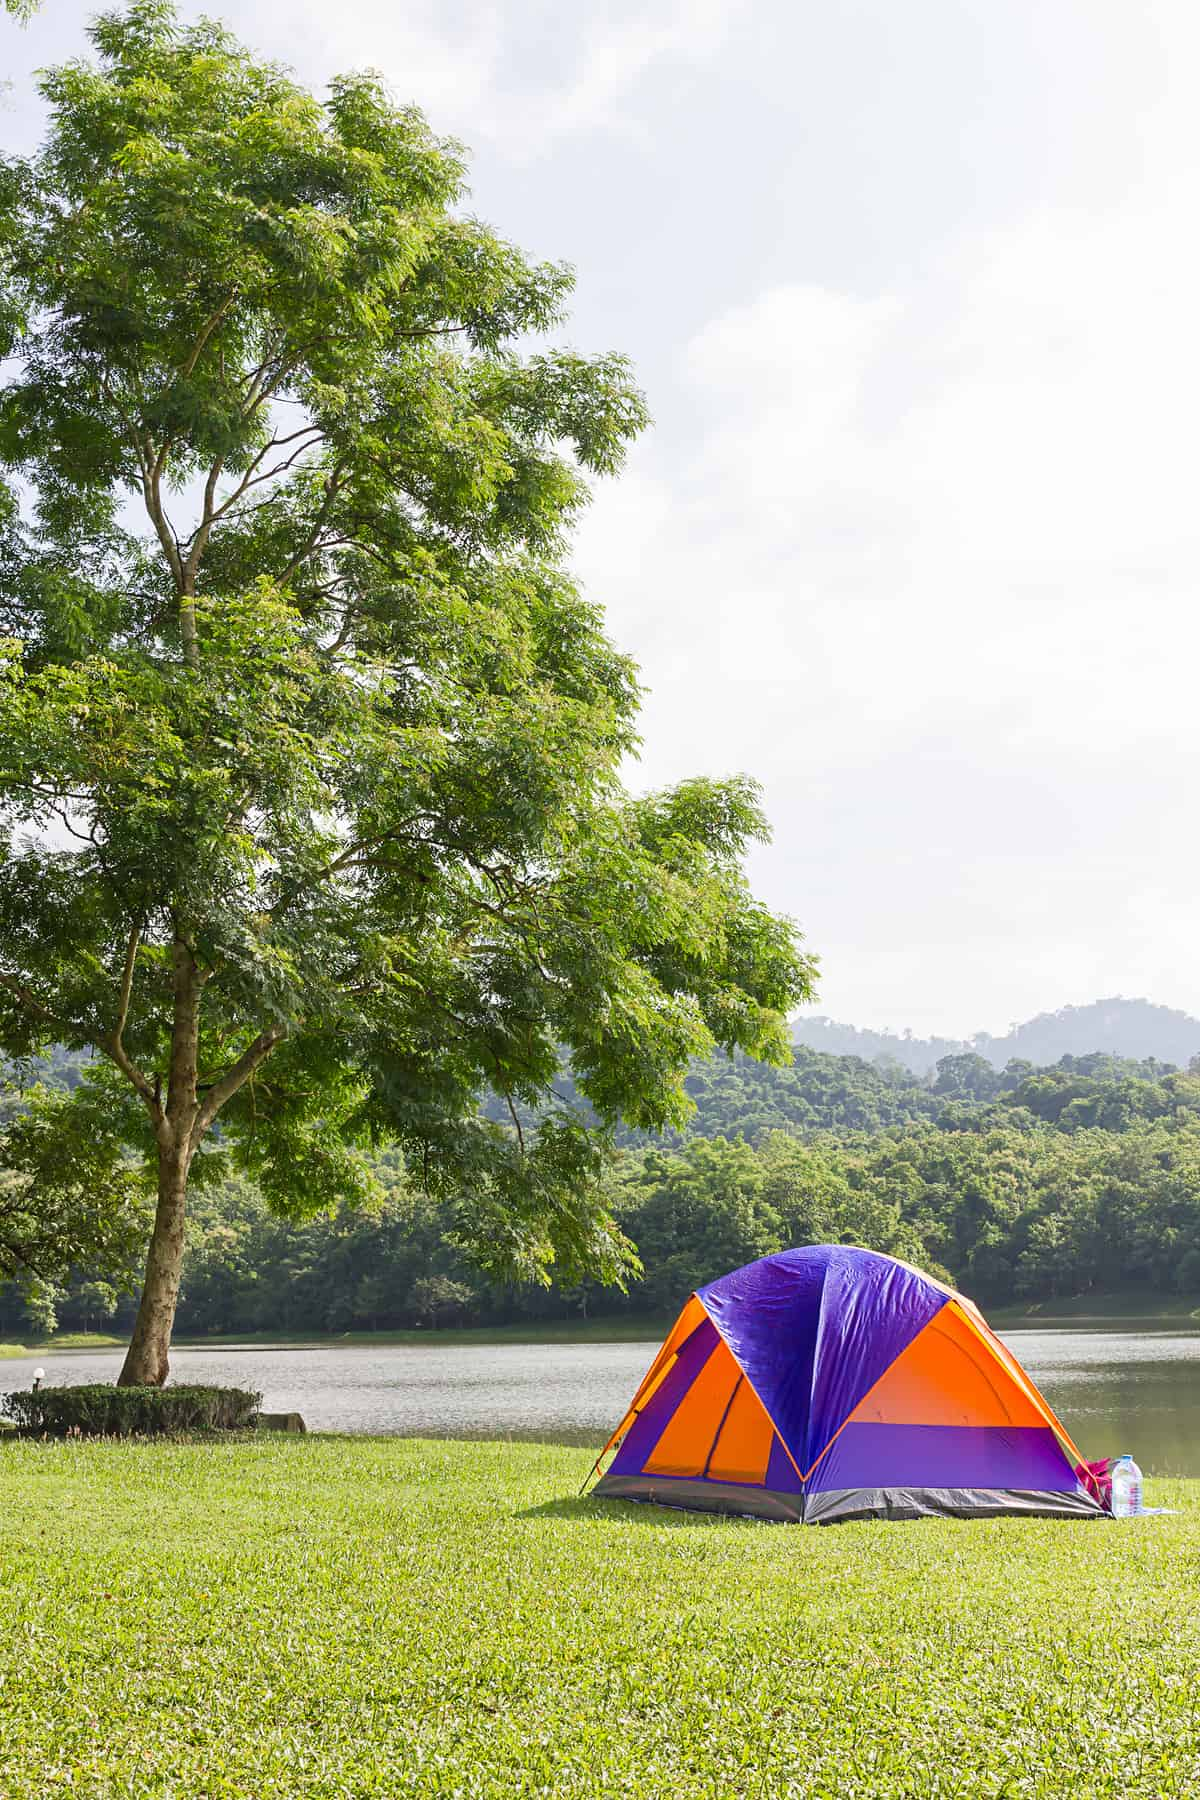 A purple and orange tent sits in a field next to a river and a big tree.